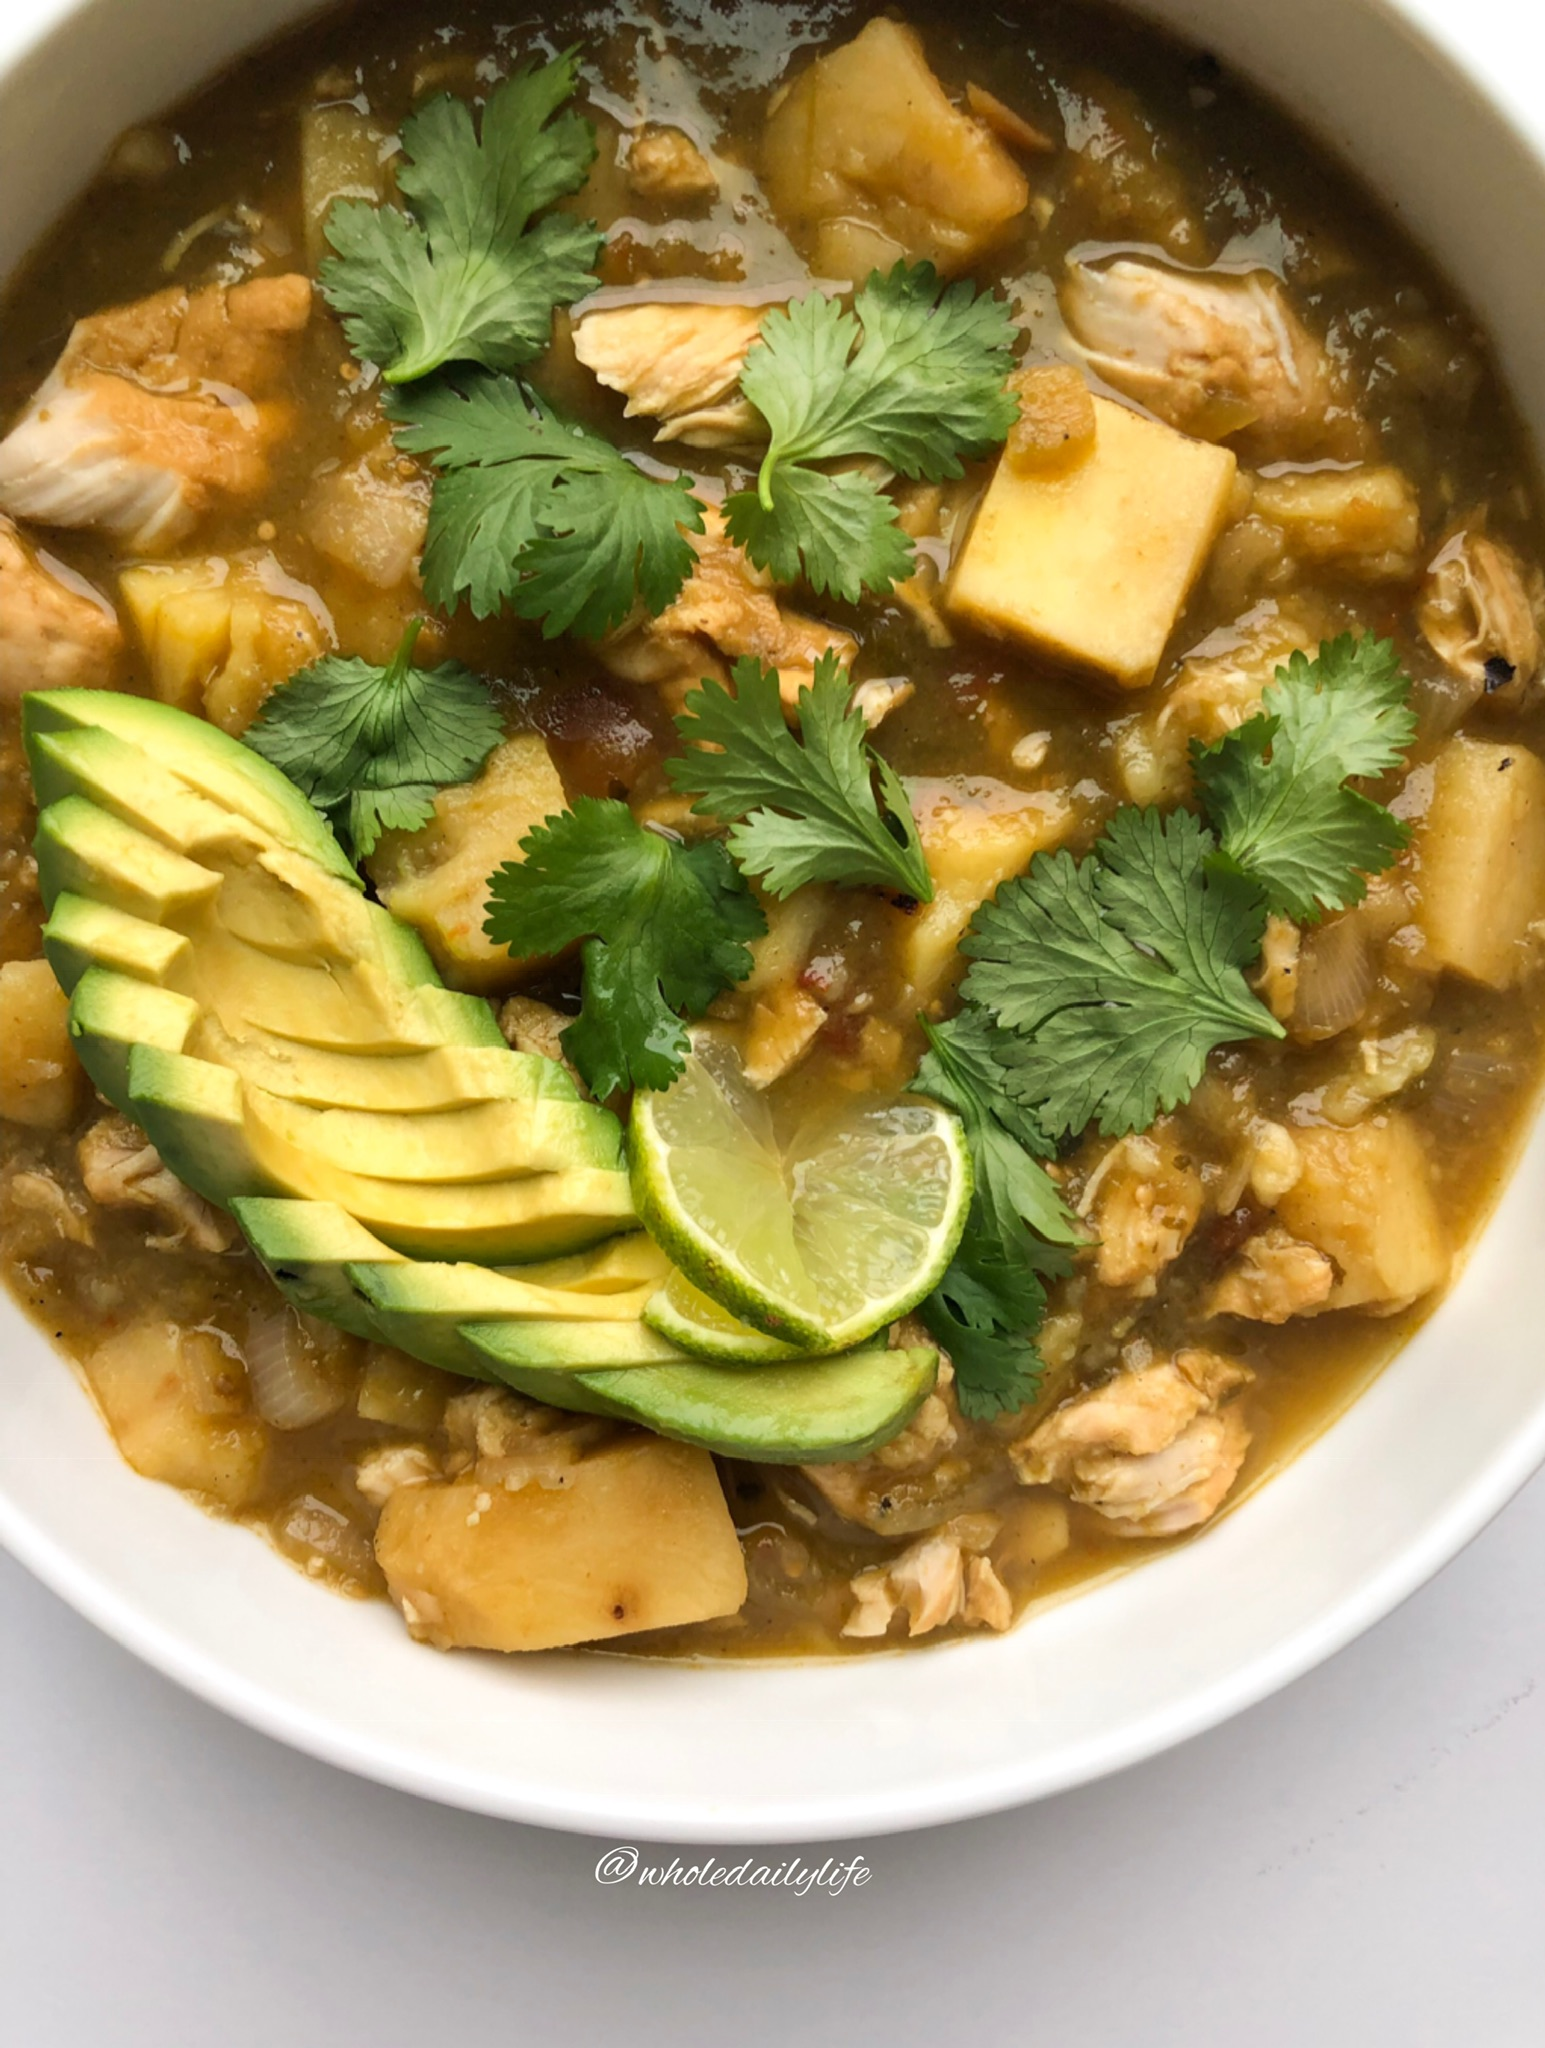 White Chicken Chili - This Whole30 compliant Instant Pot recipe is the epitome of easy. Just combine a few ingredients, press a button, and call it a day!